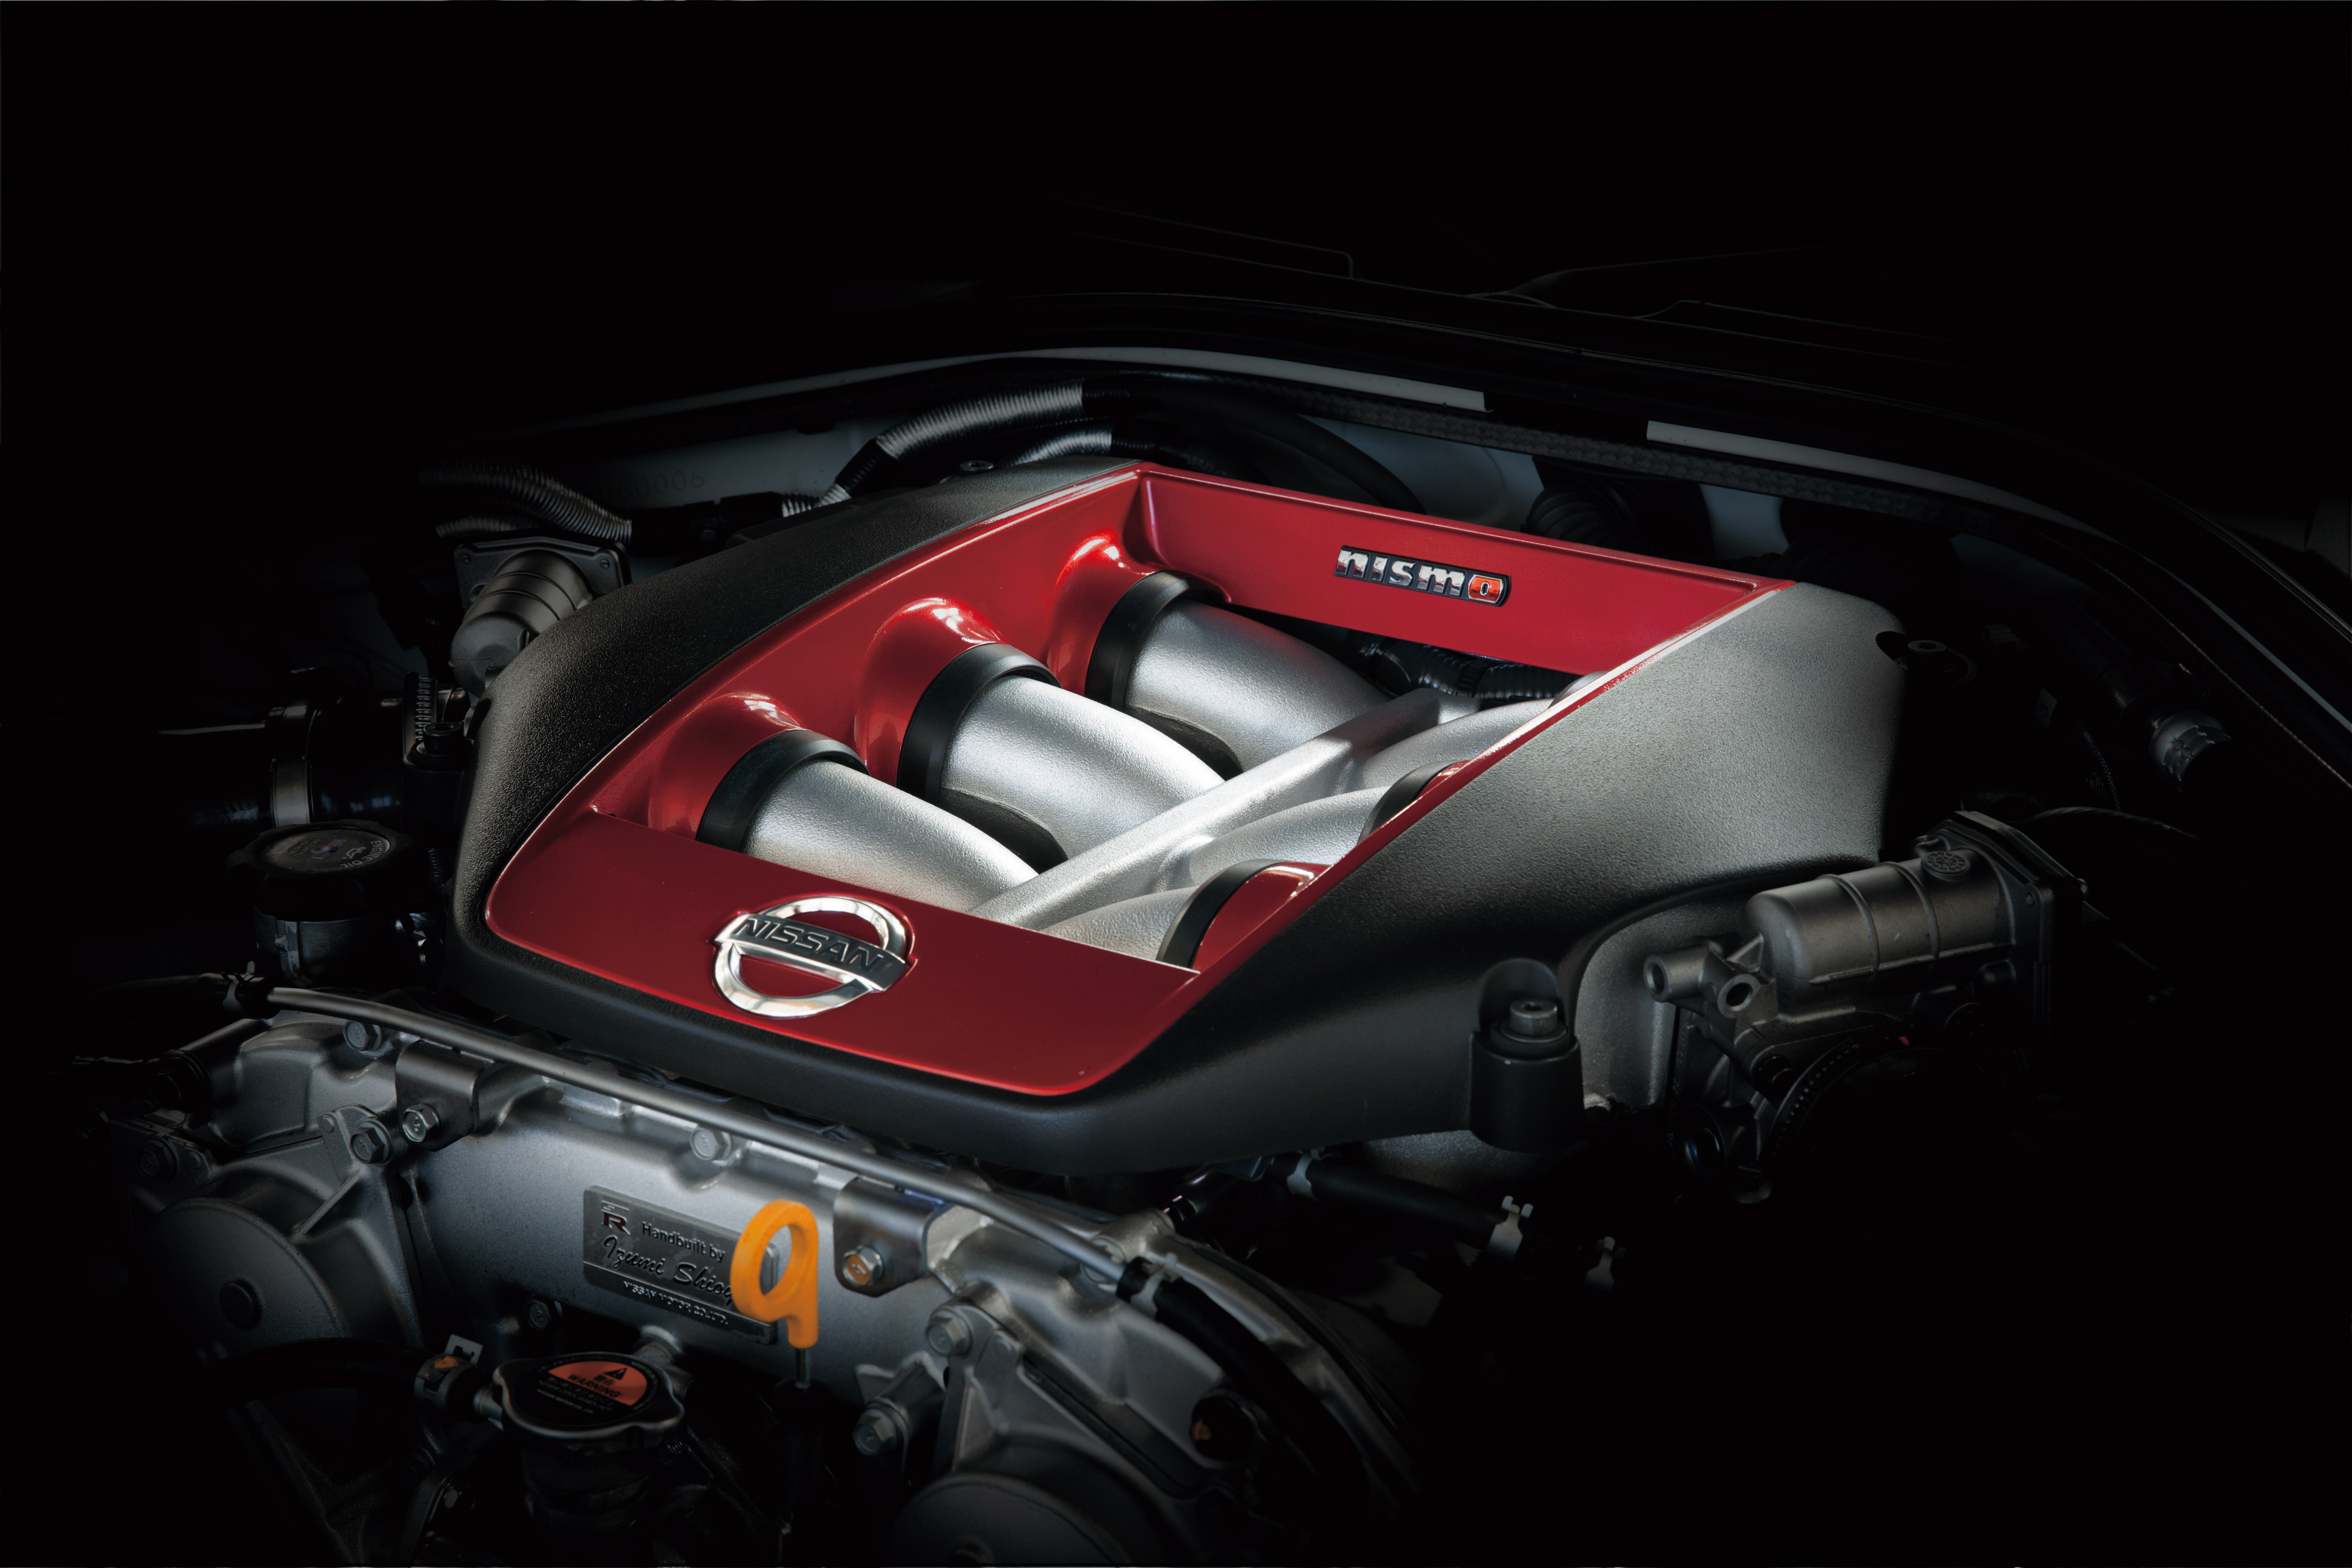 Nismo Front Under Engine Cover Nissan GT-R 2008-17